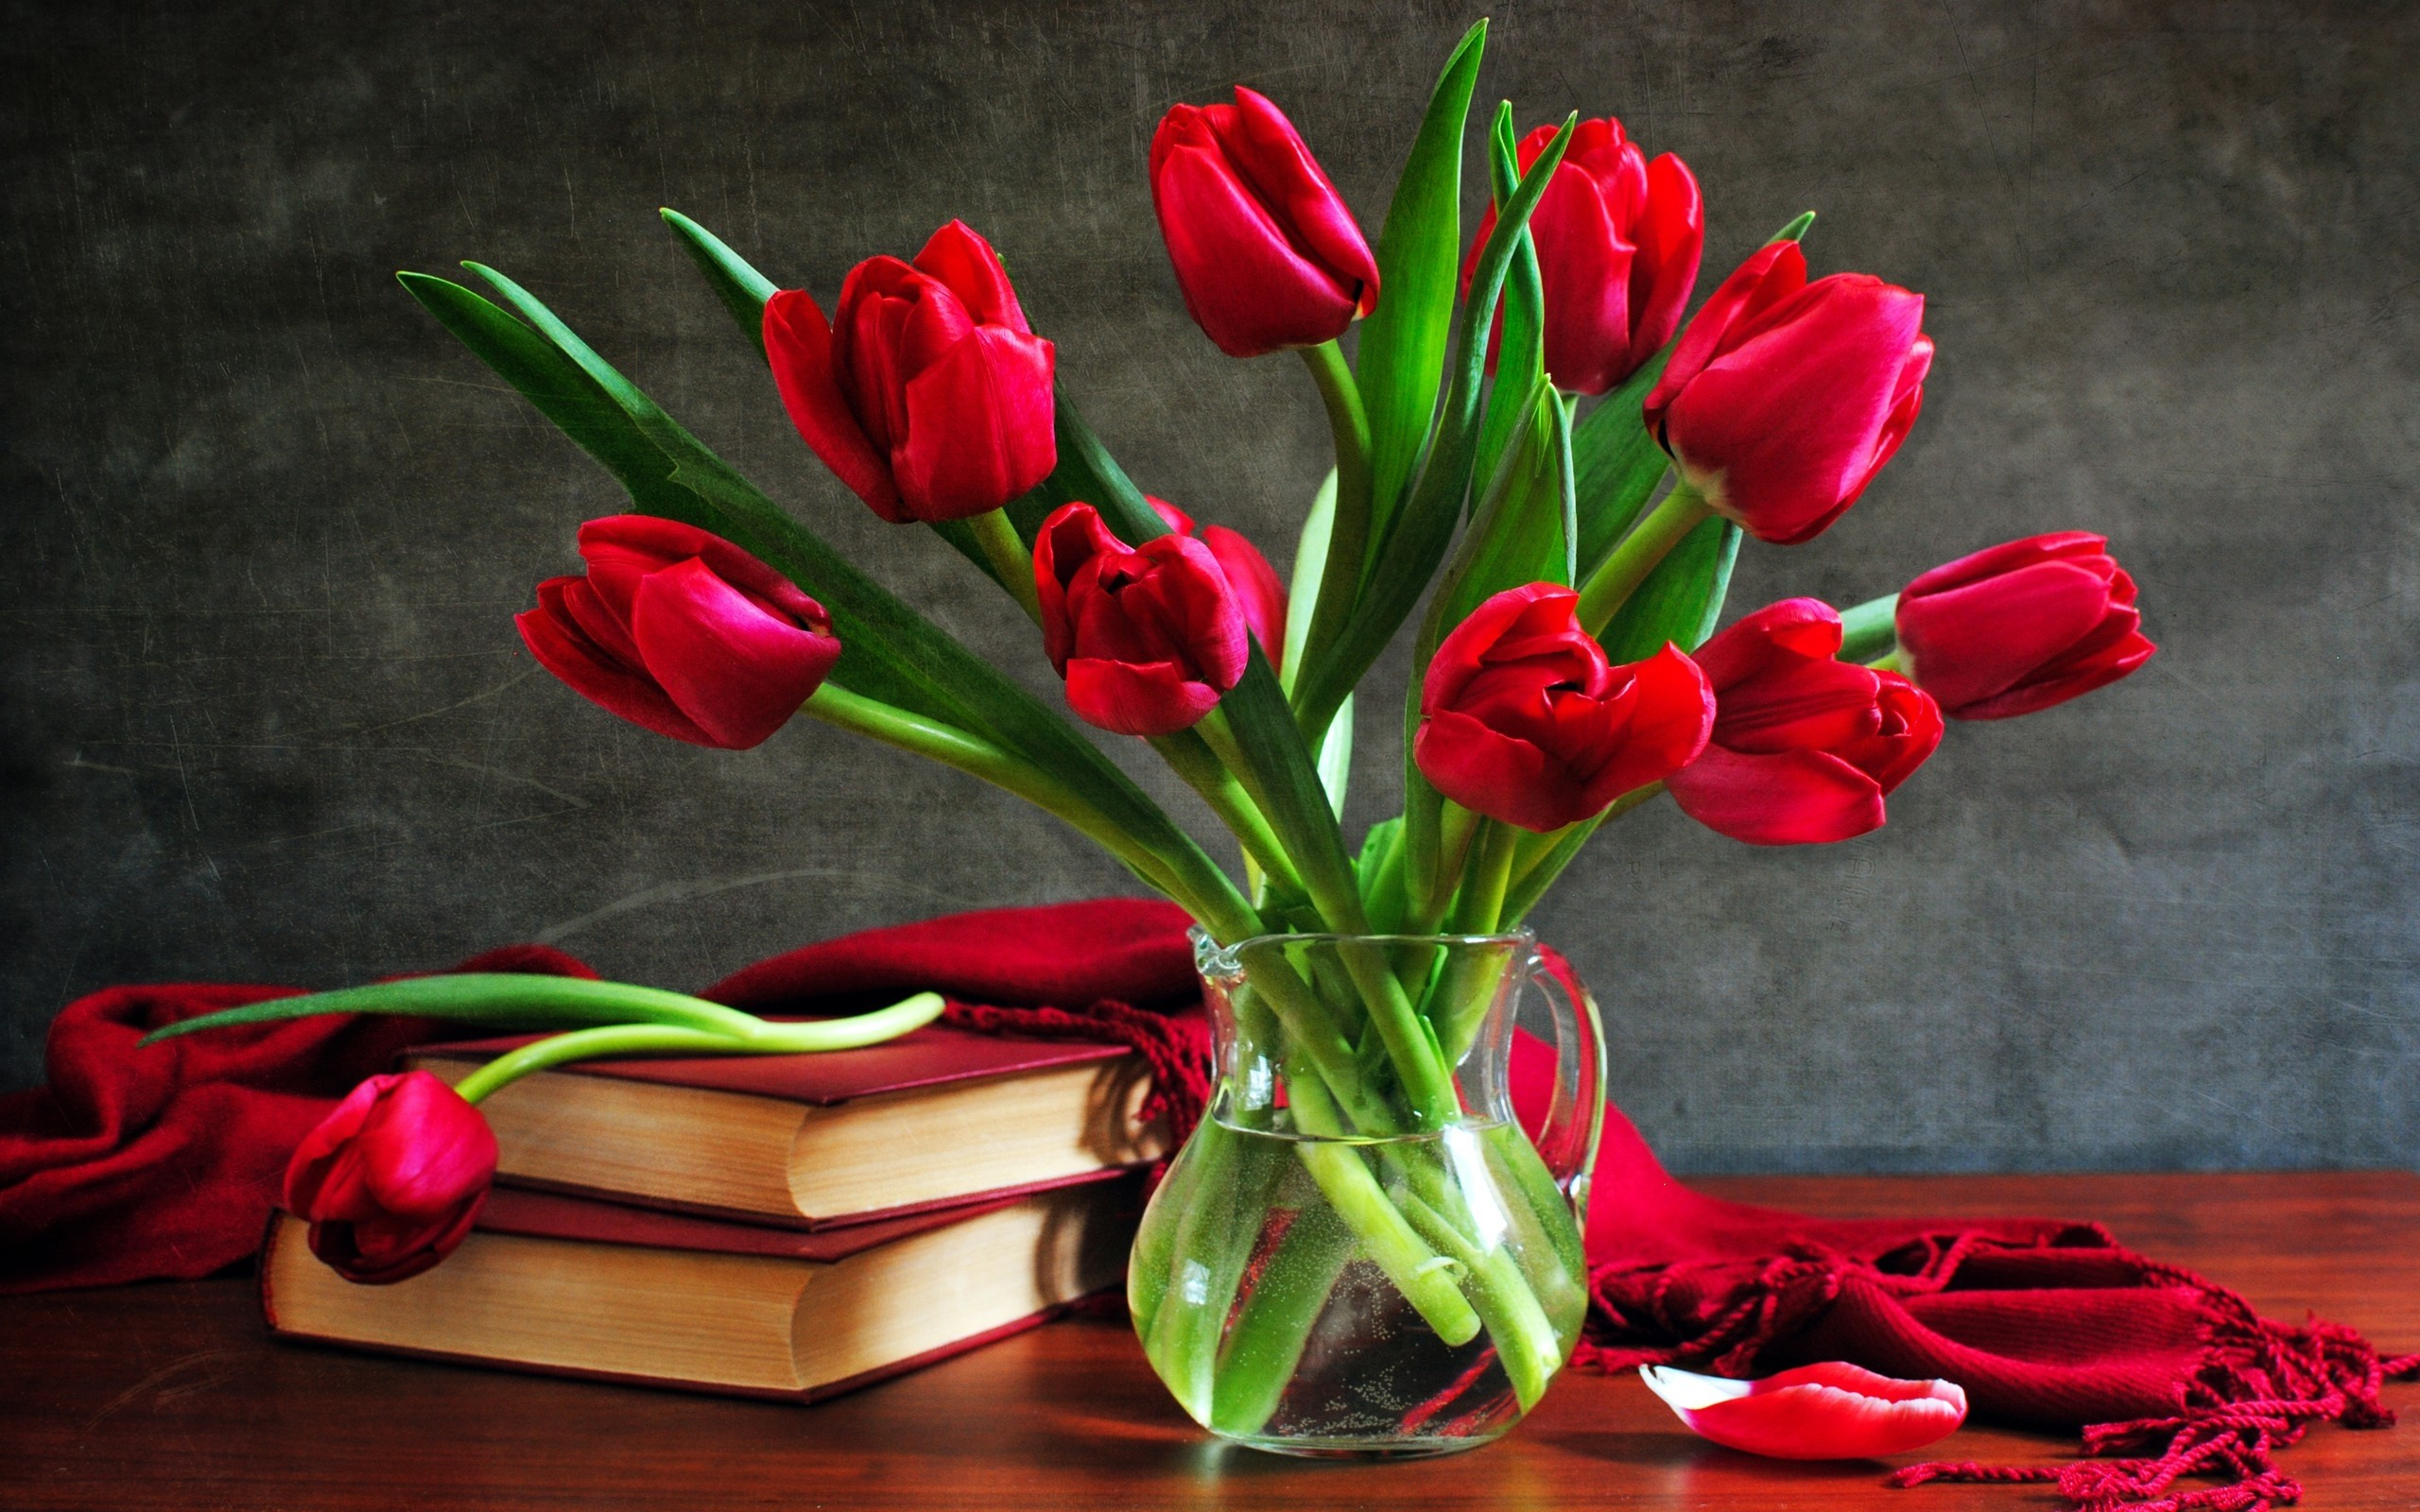 2560x1600 Composition romantic tulips HD Desktop Wallpaper